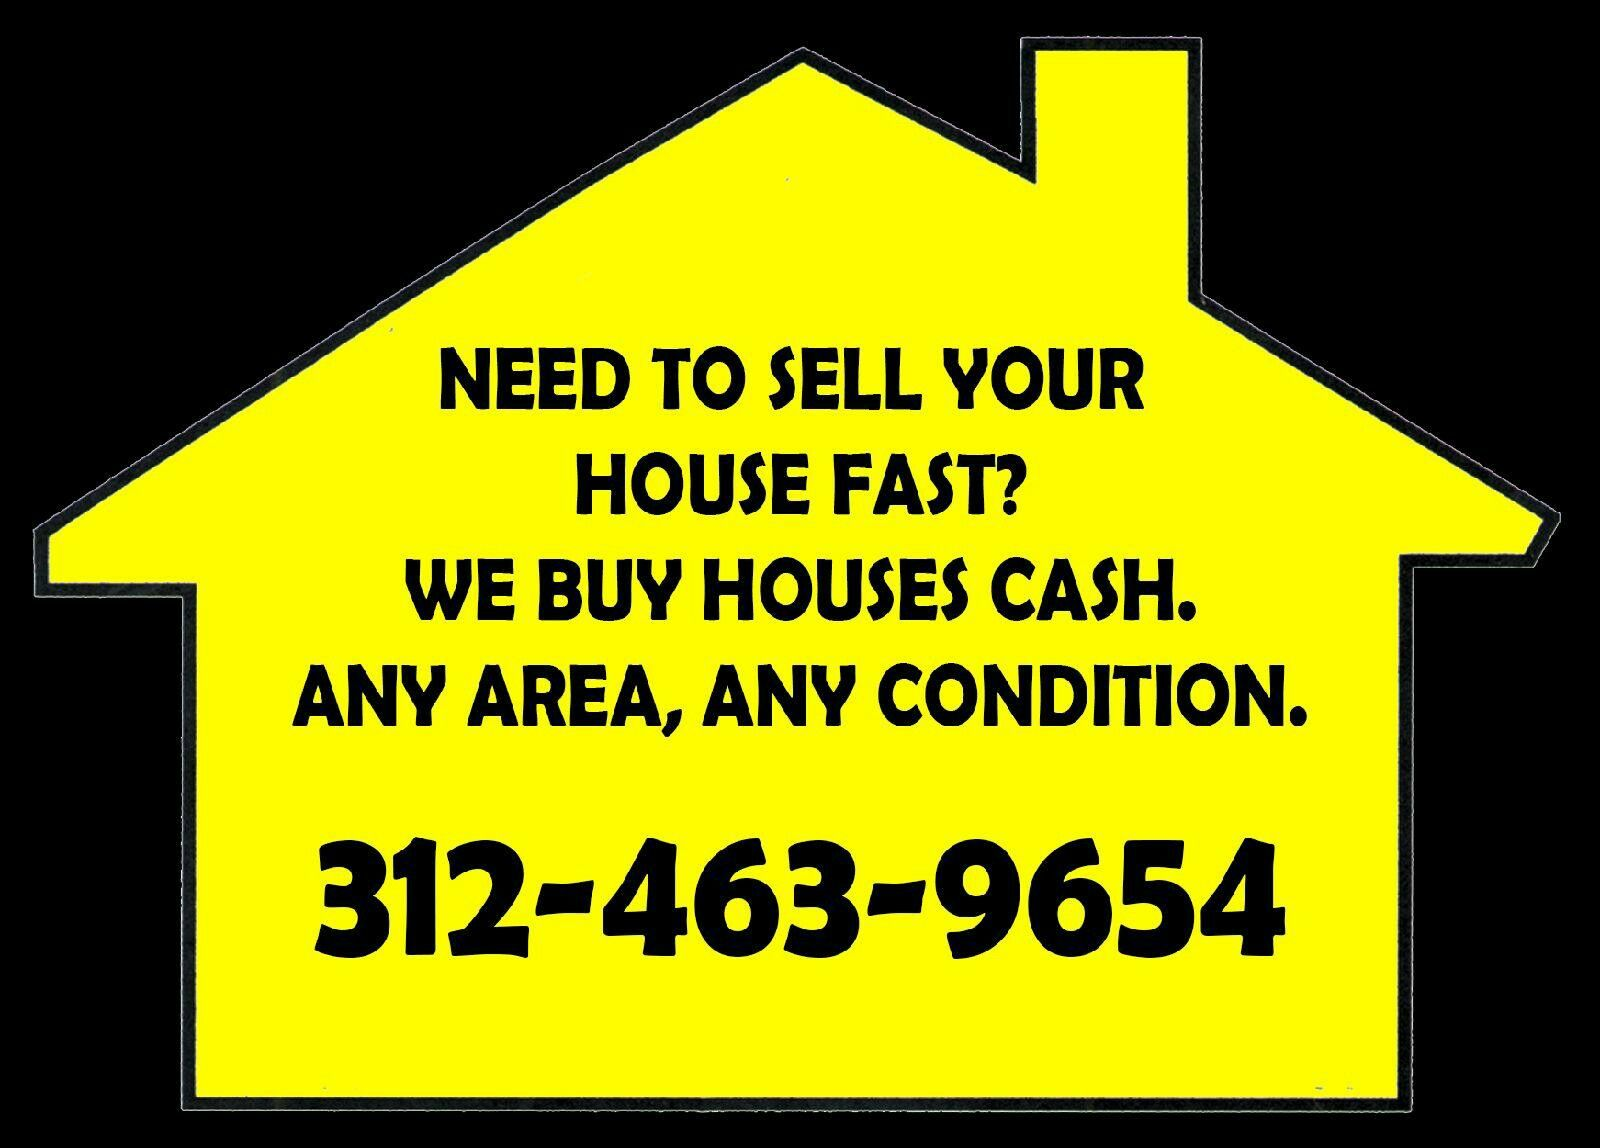 We Buy Houses Cash Wholesale Real Estate We Buy Houses Real Estate Signs